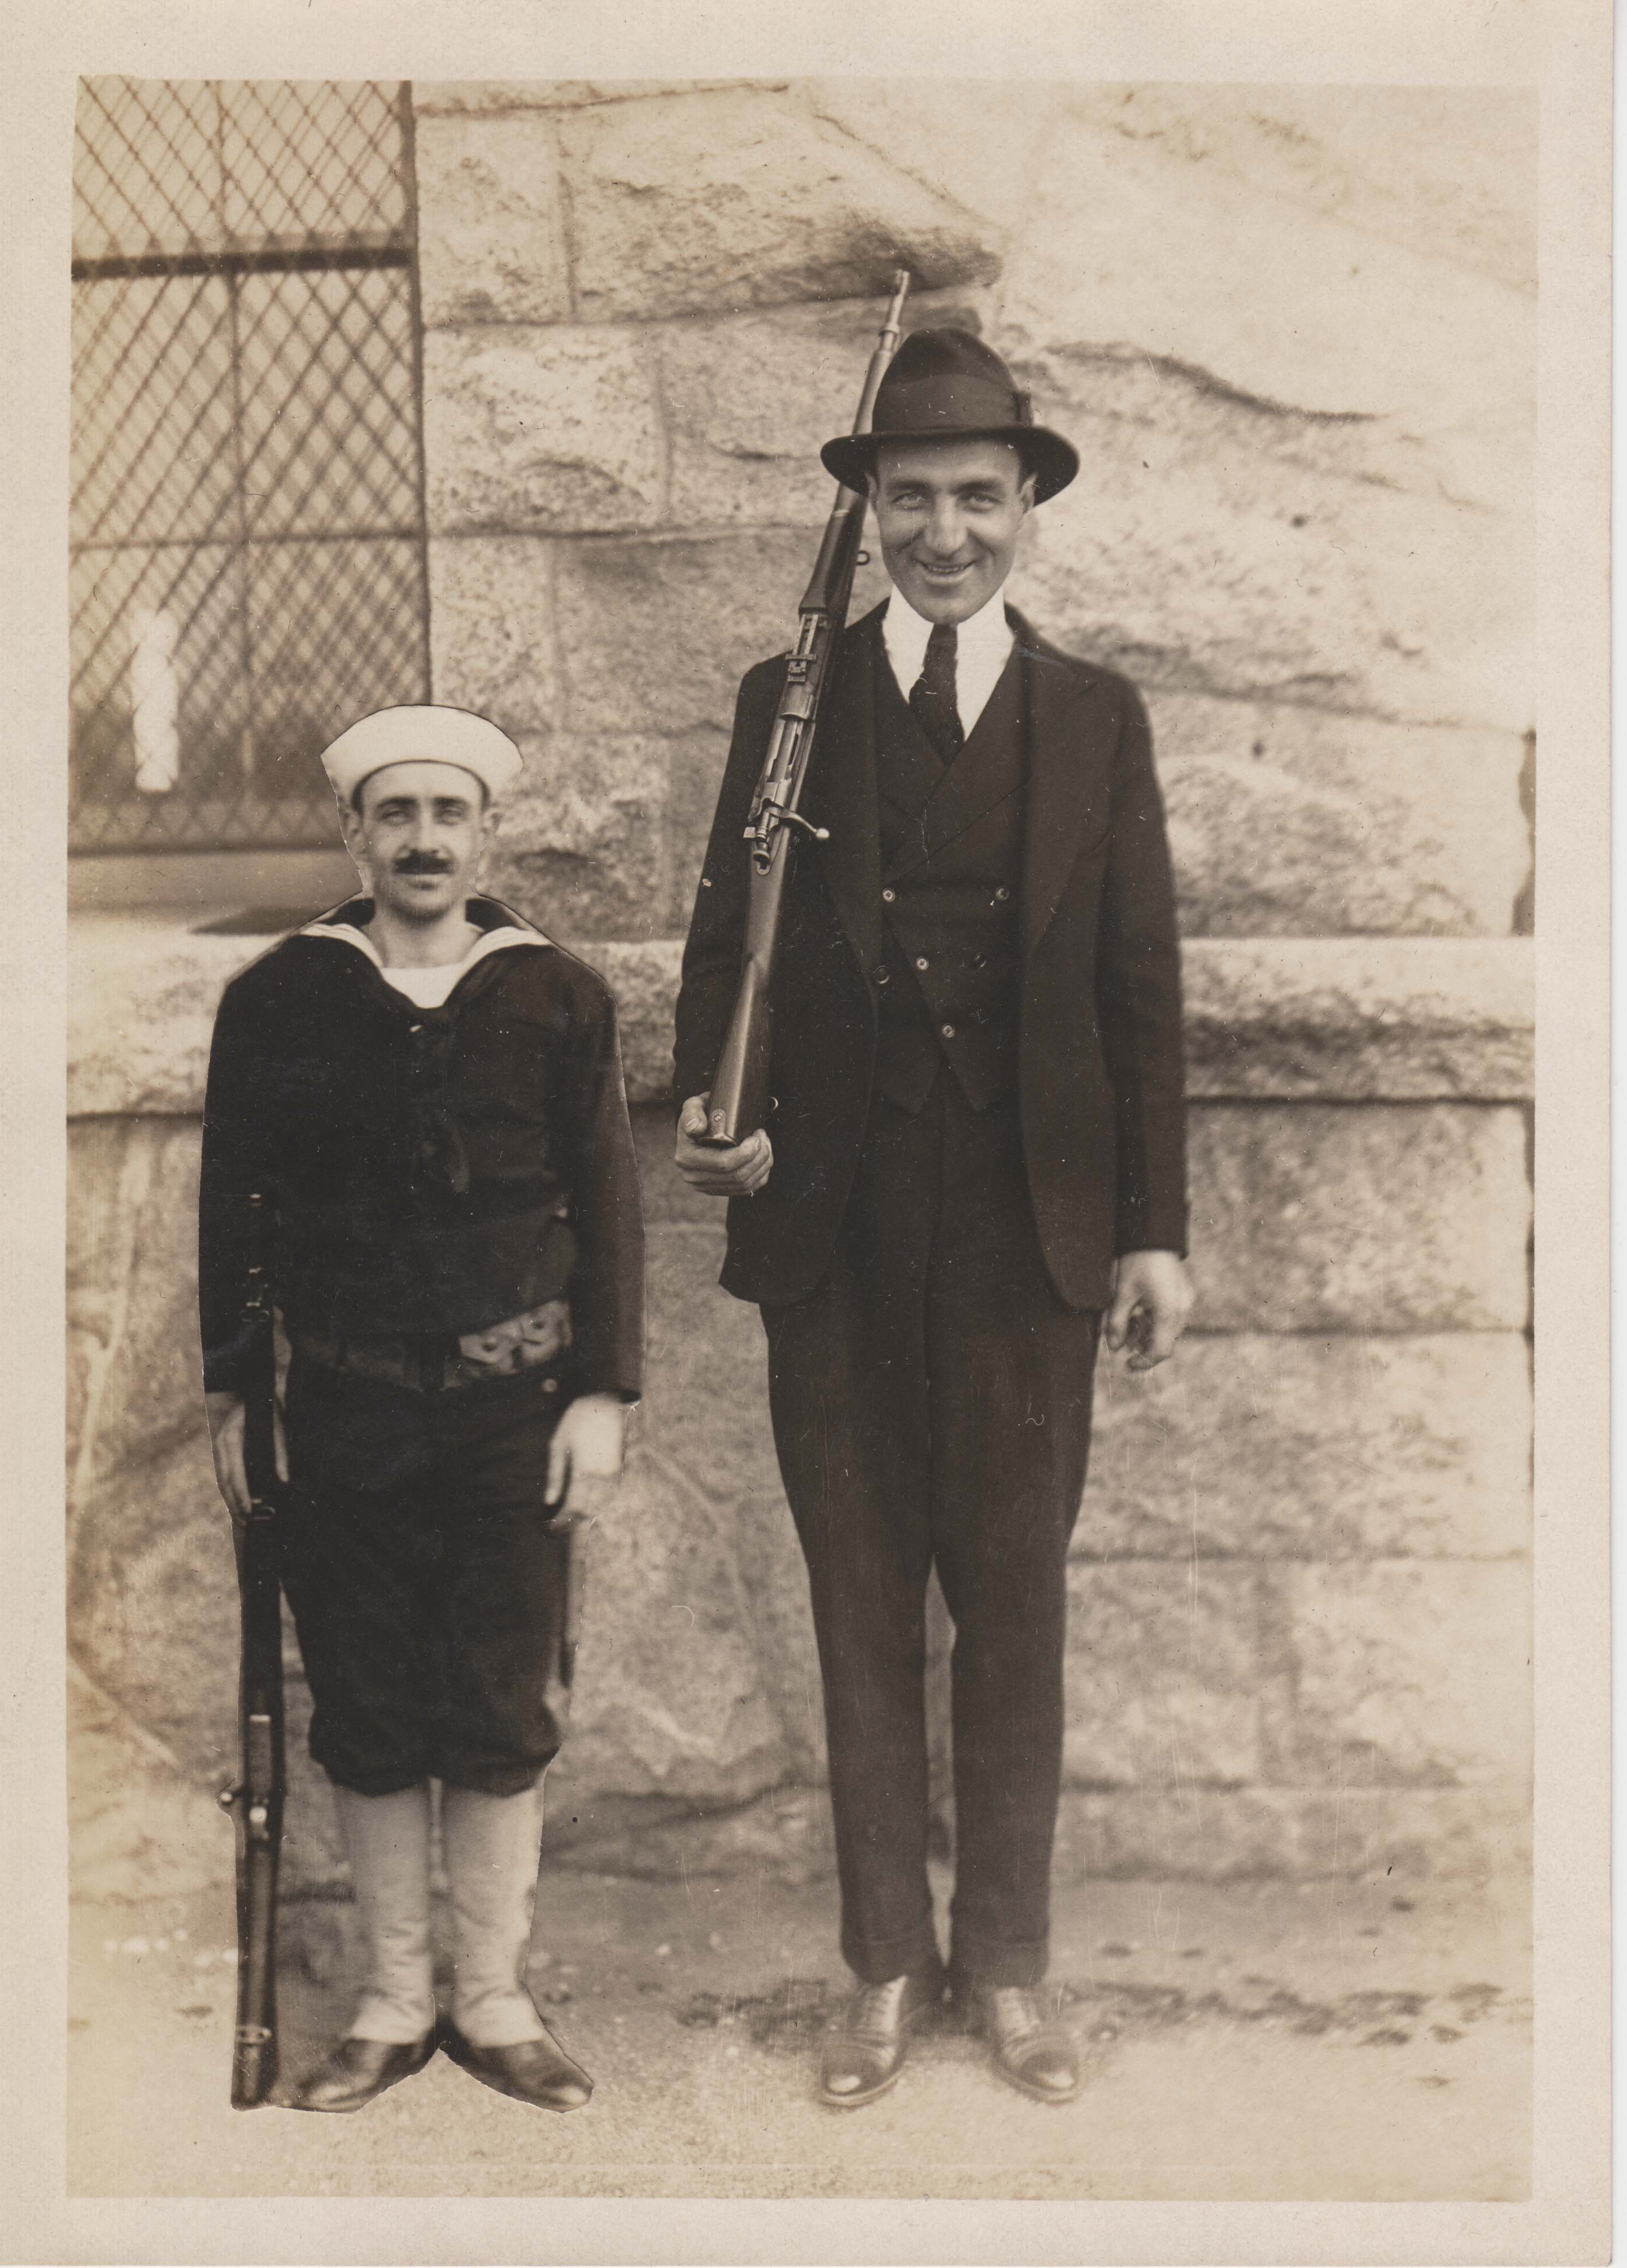 0189 Short man and Tall man with rifles